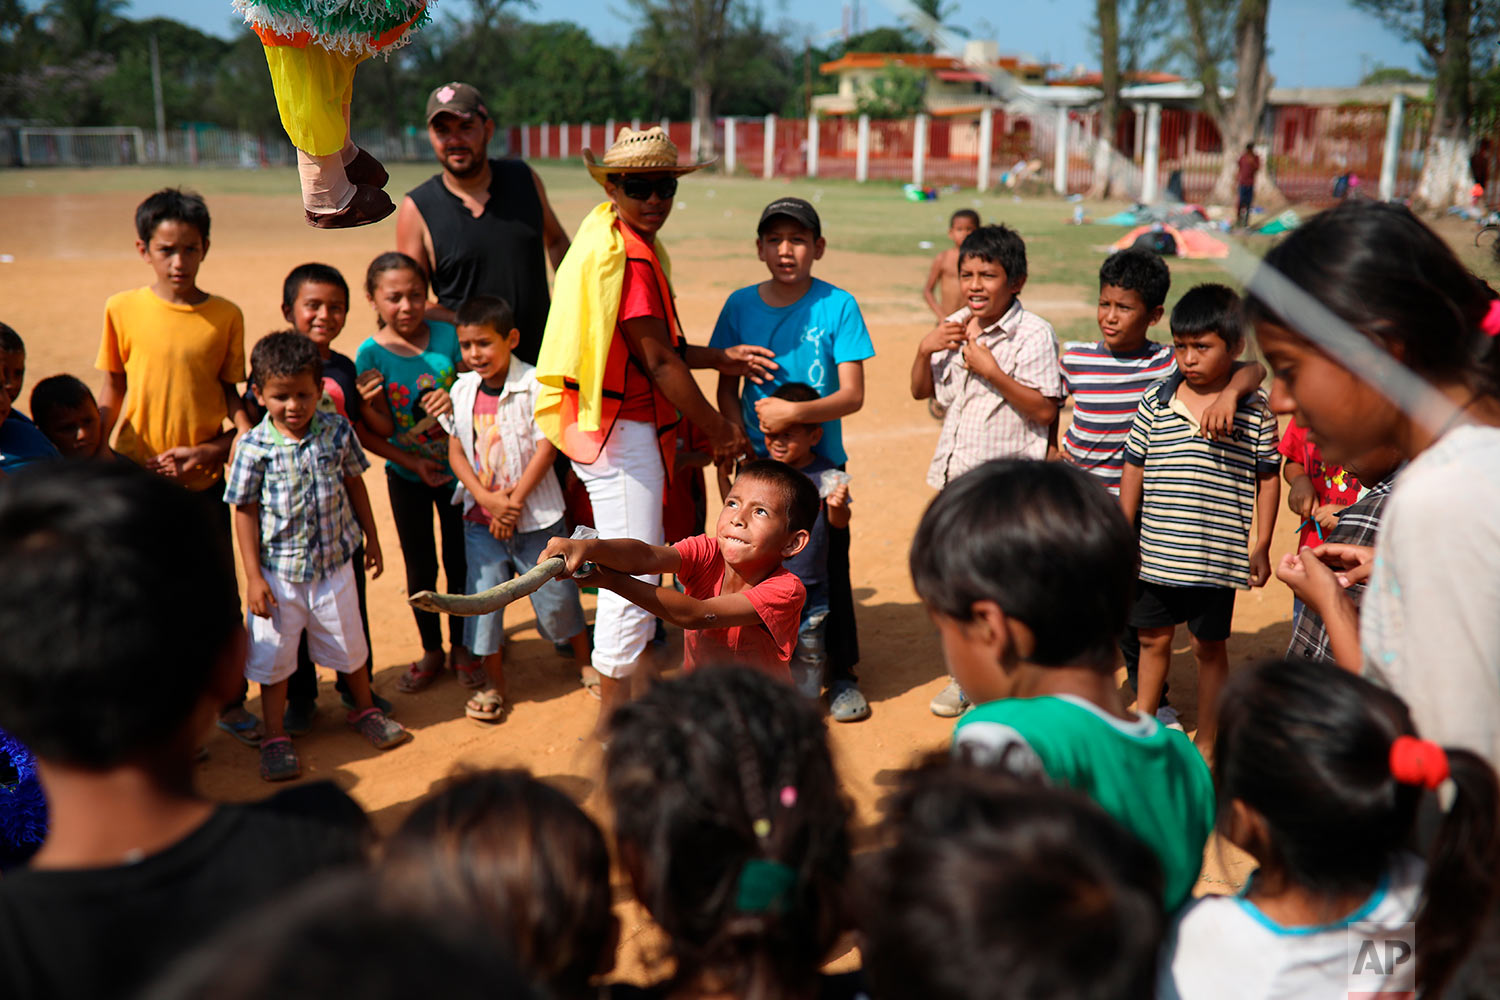 Central American migrant children play with a piñata during the annual Migrant Stations of the Cross caravan as the caravan stops at a sports center in Matias Romero, Oaxaca state, Mexico, Monday, April 2, 2018. (AP Photo/Felix Marquez)